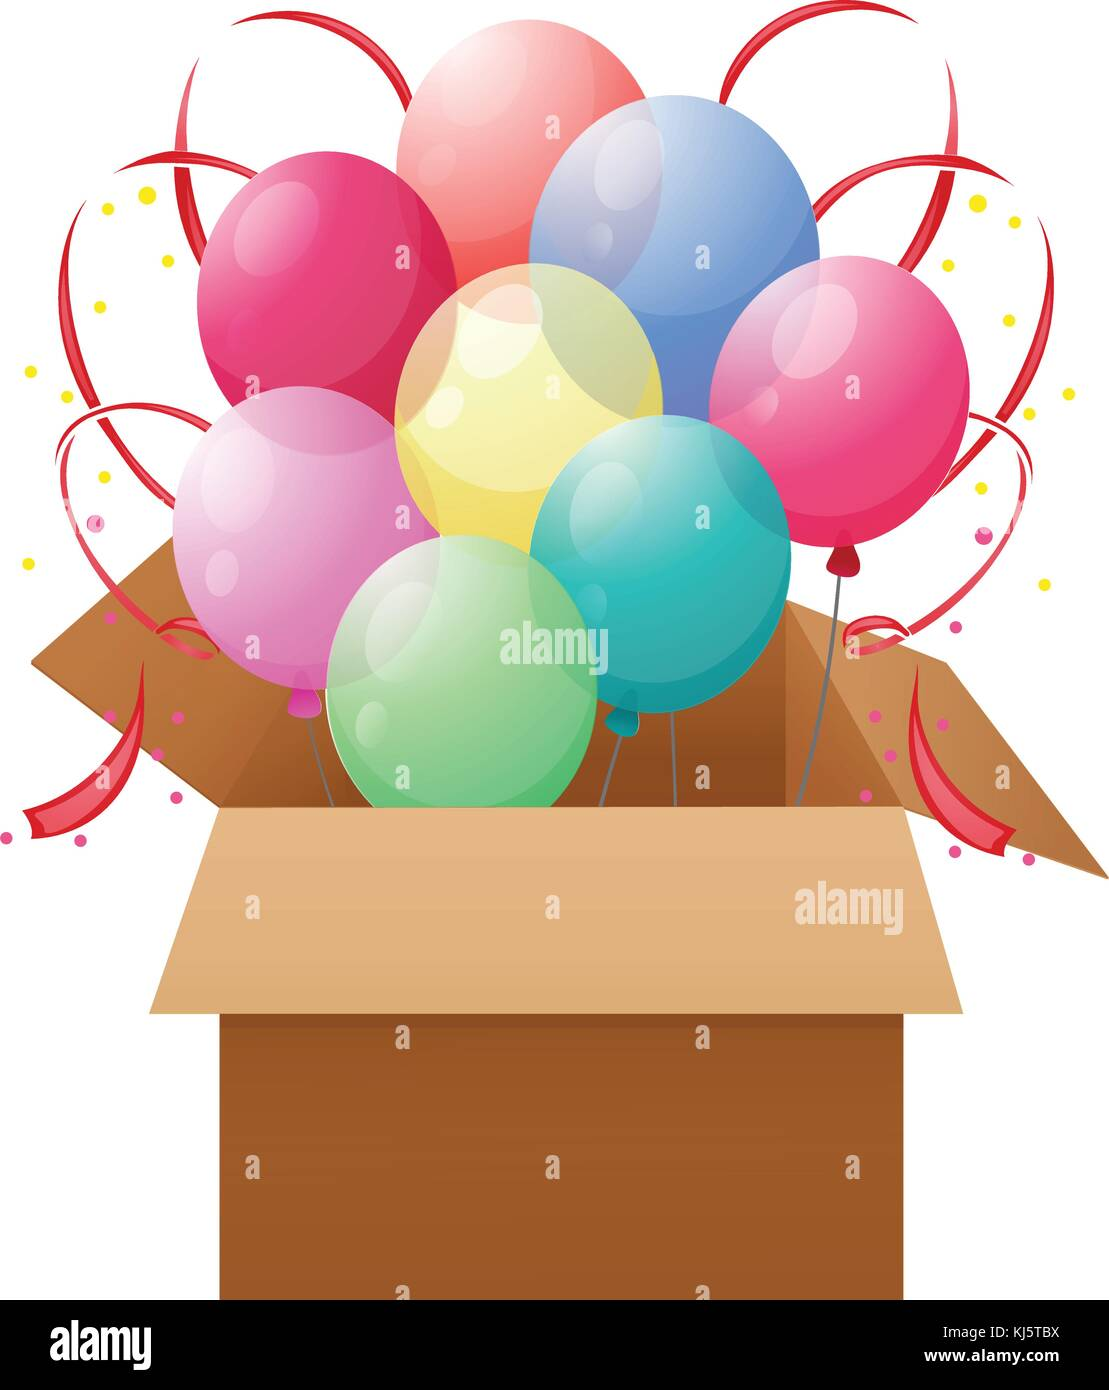 Illustration of a box with eight colorful balloons on a white background - Stock Image